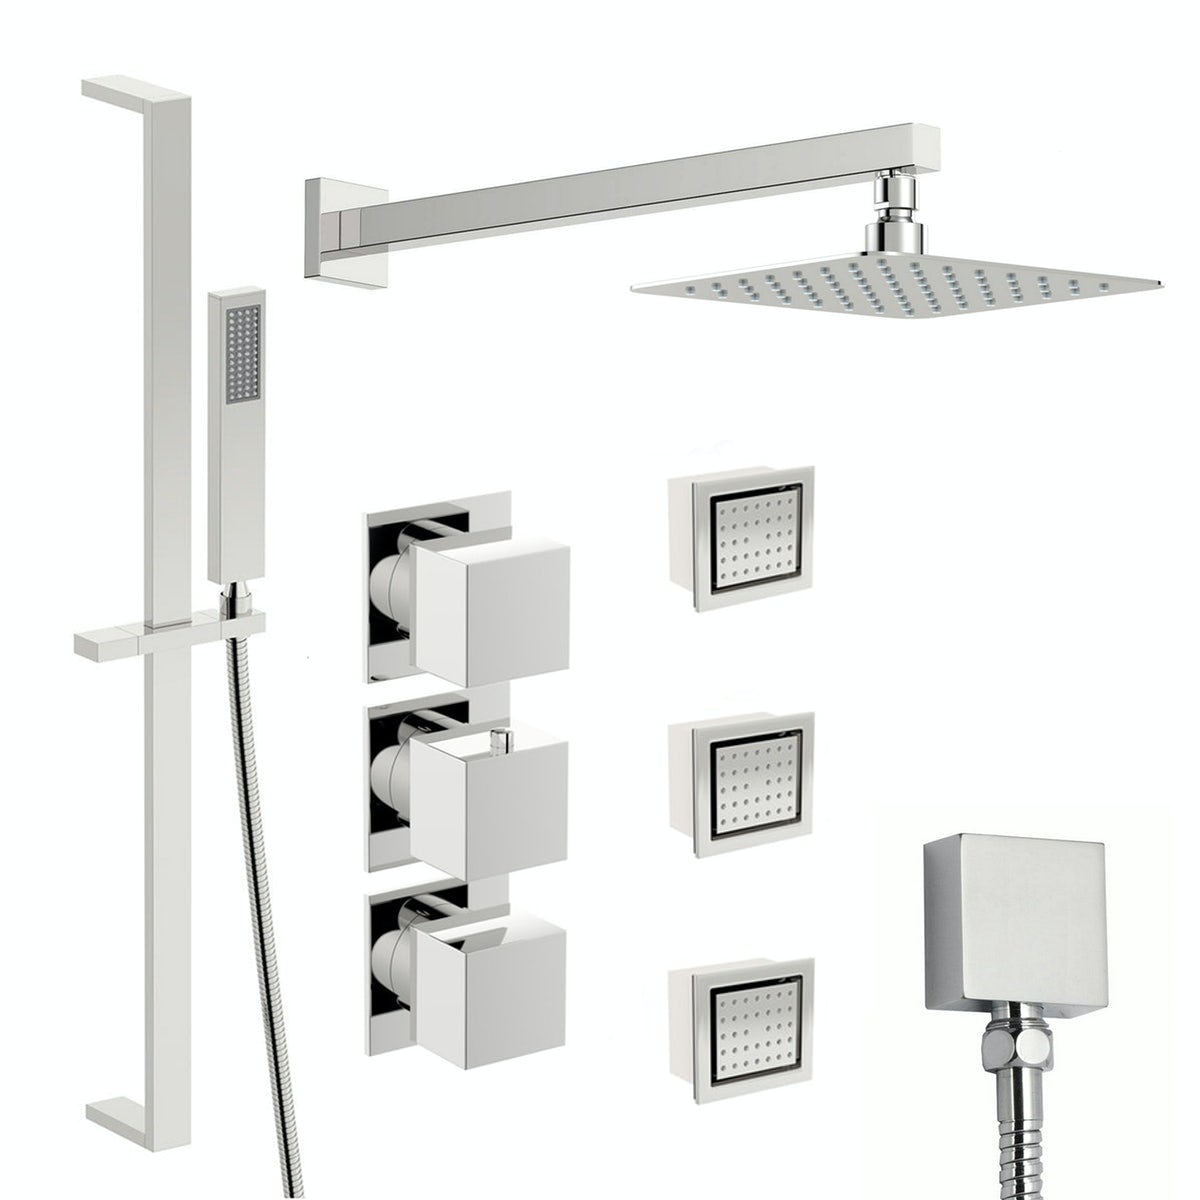 Mode Cooper thermostatic shower valve with complete wall shower set